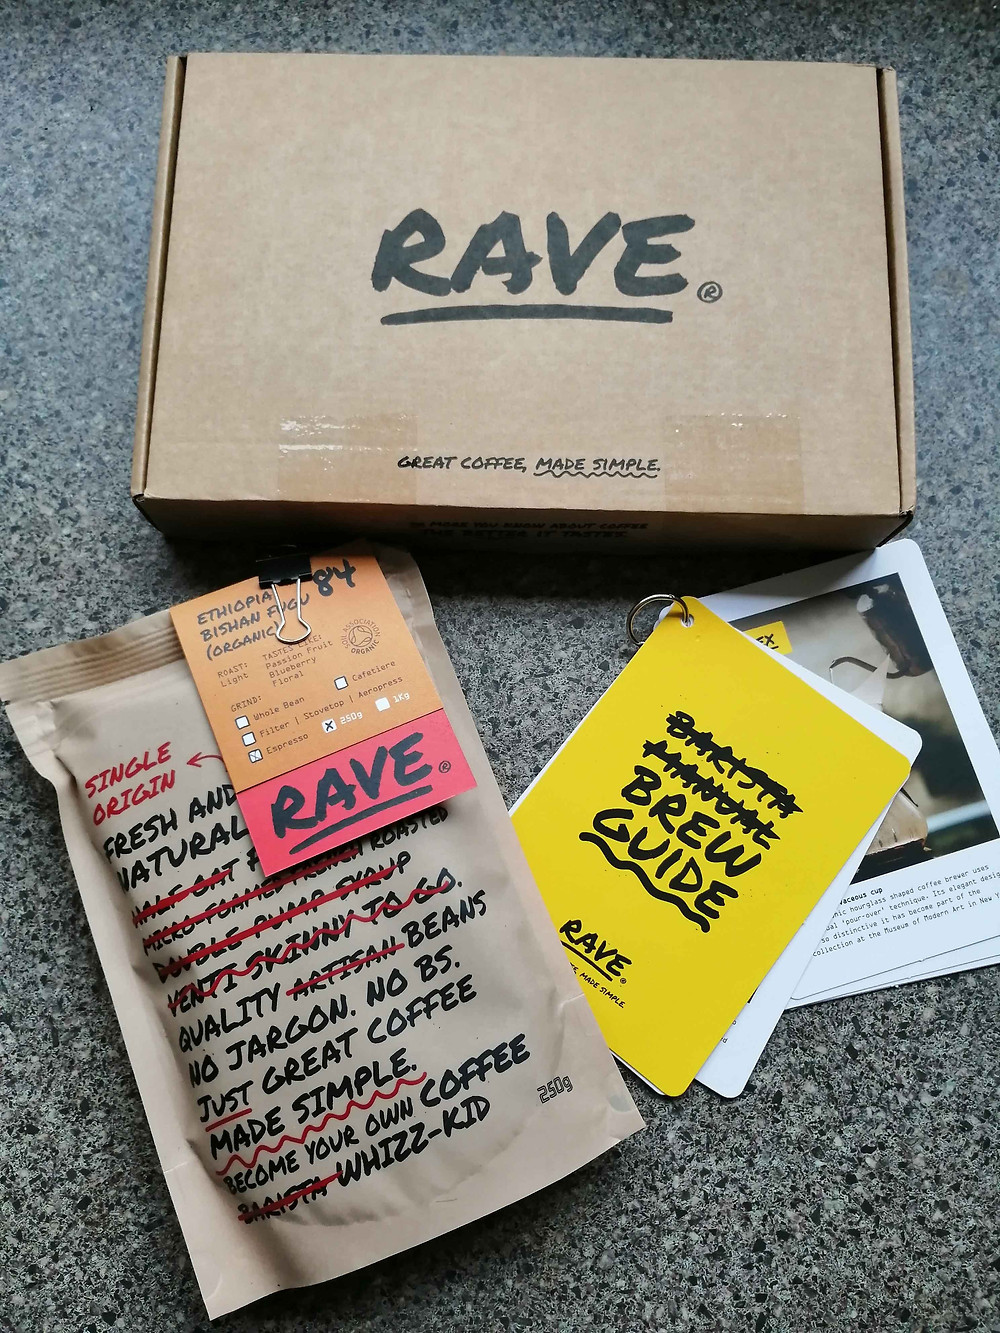 rave coffee subscription box contents